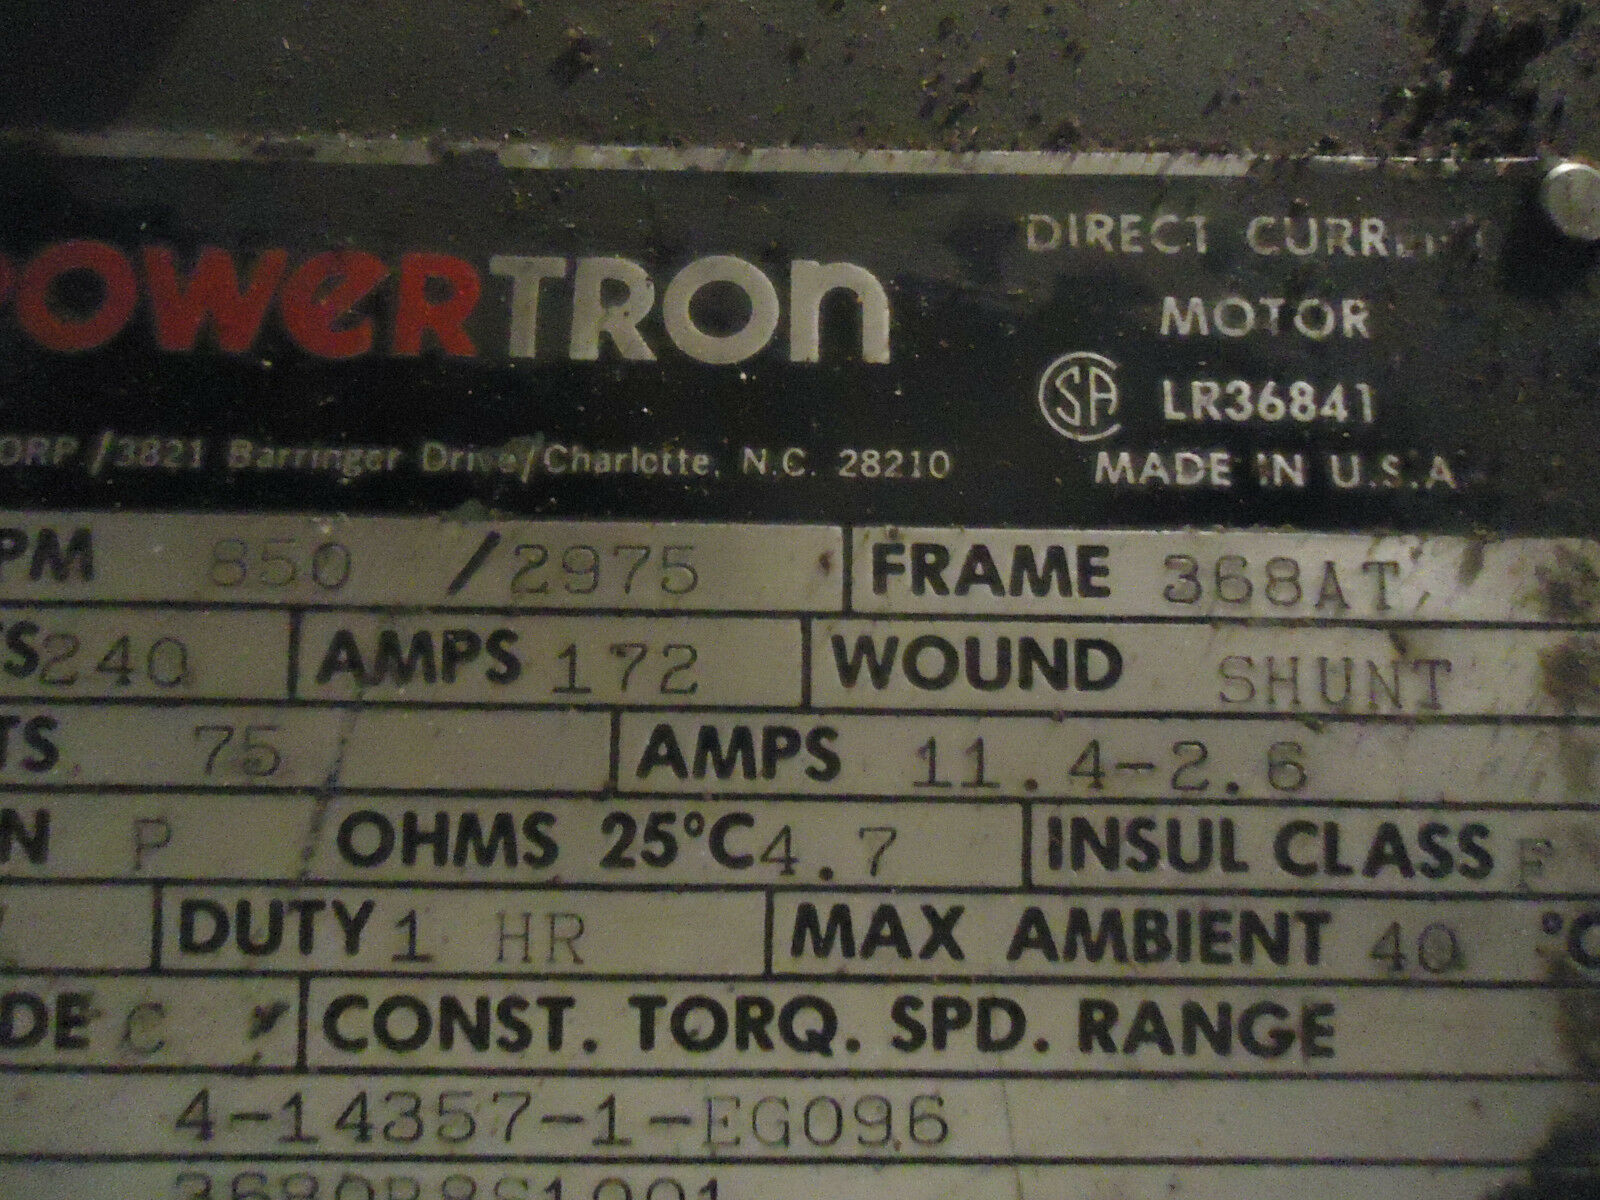 Powertron DC Motor 368at Frame 50hp 850/2975rpm Shunt Wound | eBay